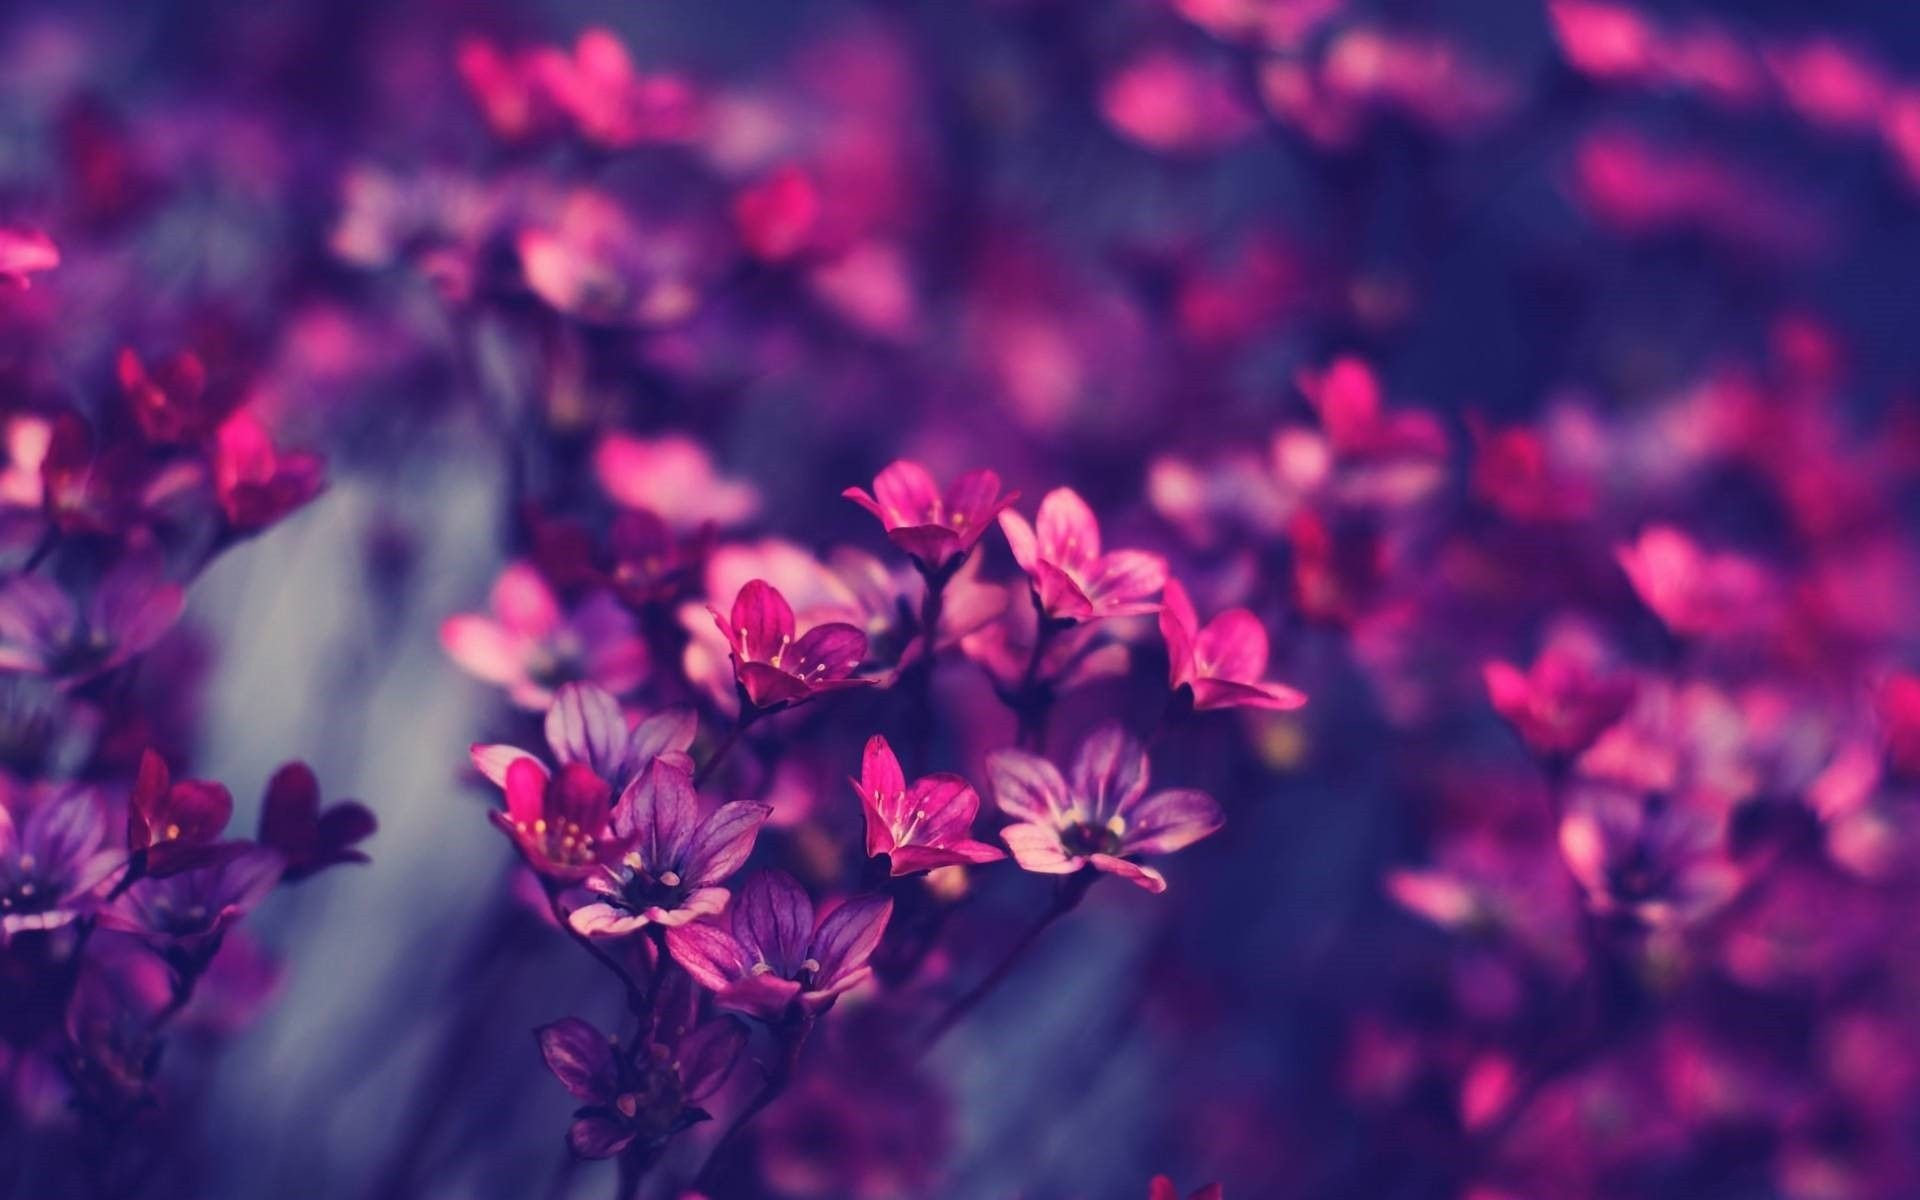 Pretty Wallpapers HD Tumblr. Purple flowers wallpaper